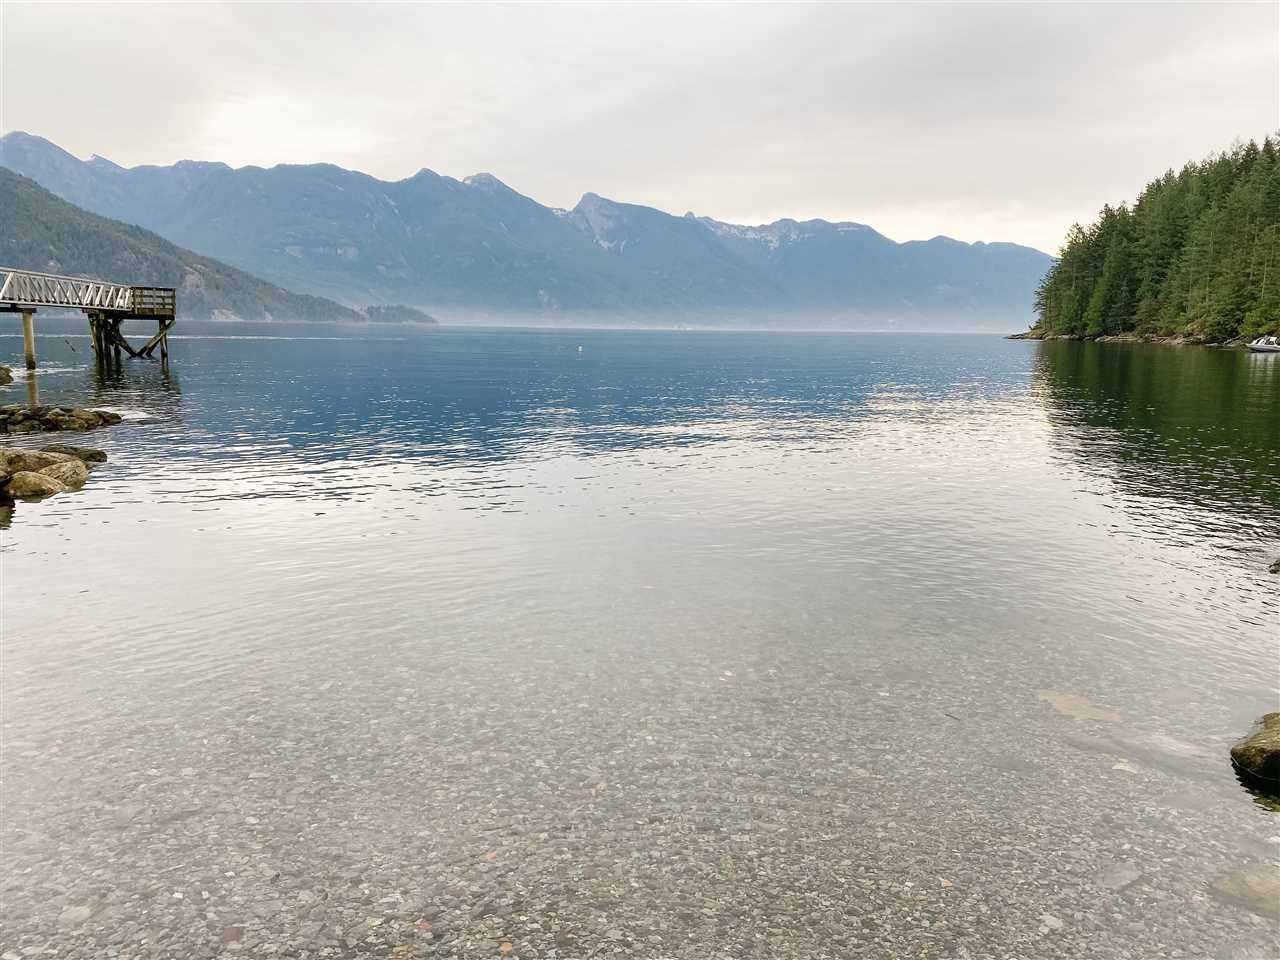 Main Photo: Lot 1 DOUGLAS BAY: Gambier Island Land for sale (Sunshine Coast)  : MLS®# R2420395